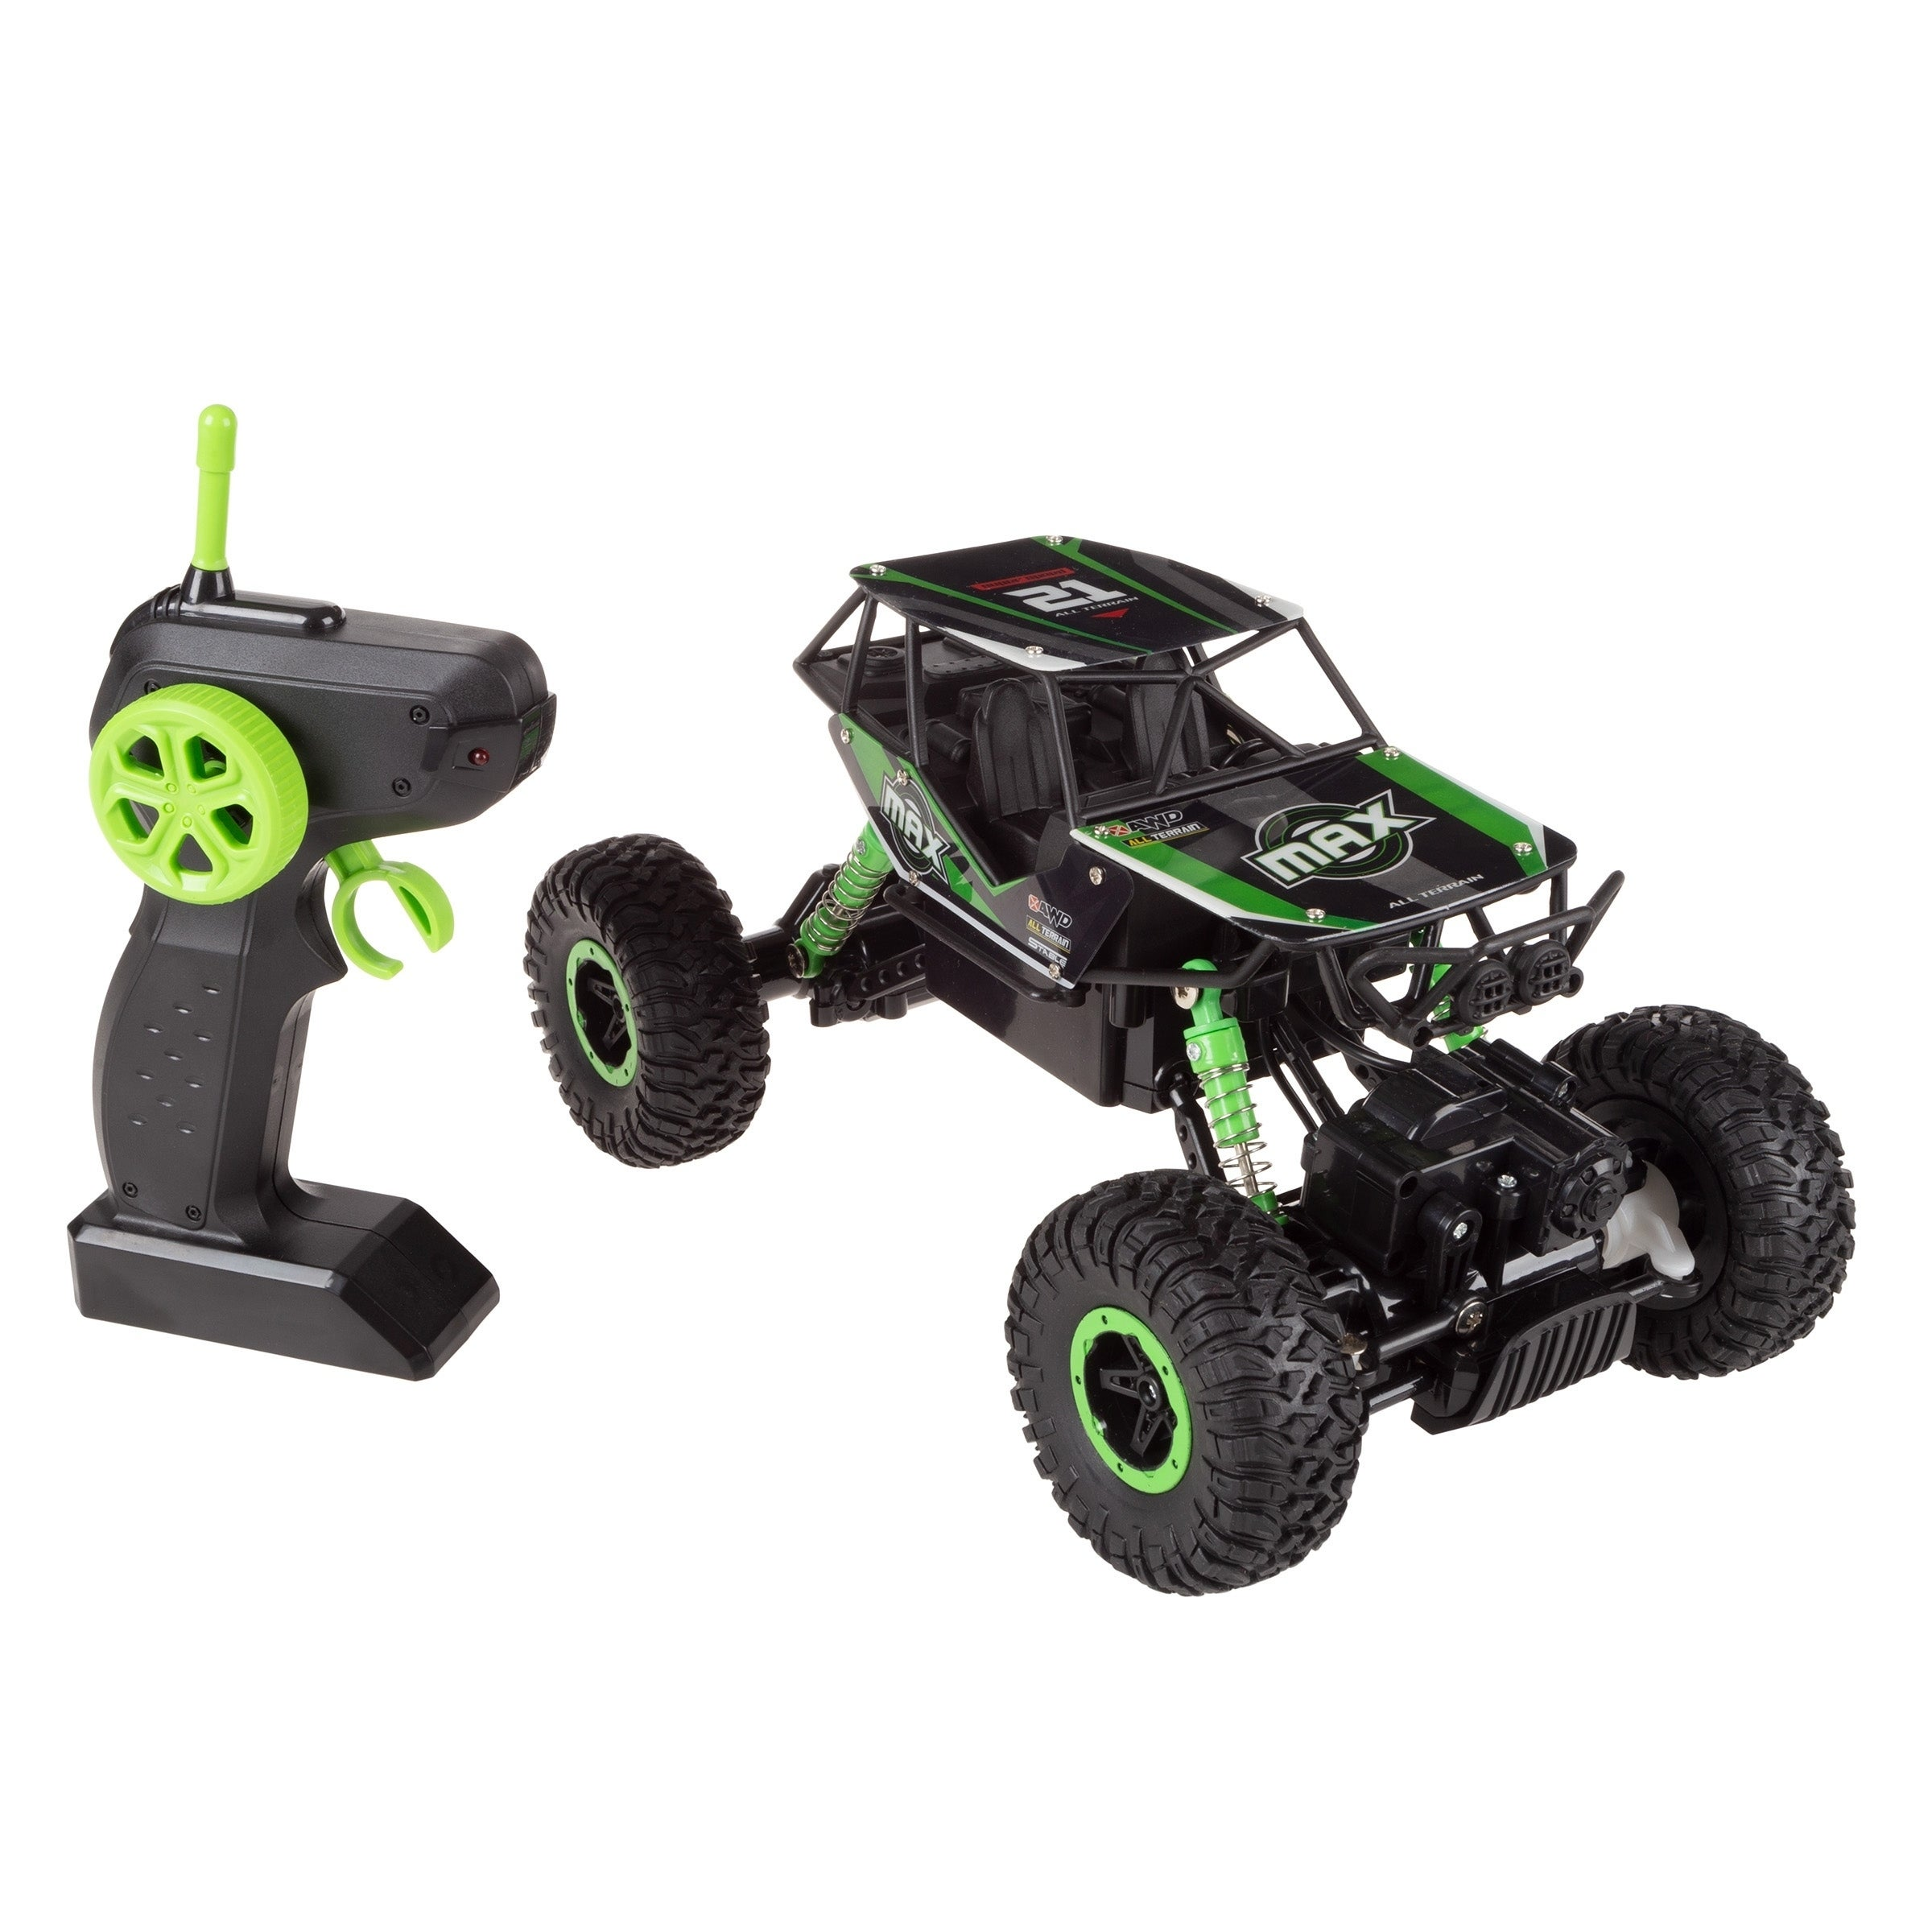 Shop Remote Control Monster Truck 1 16 Scale 2 4 Ghz Rc Off Road Toy By Hey Play 10 25 X 6 25 X 5 75 Overstock 28502842